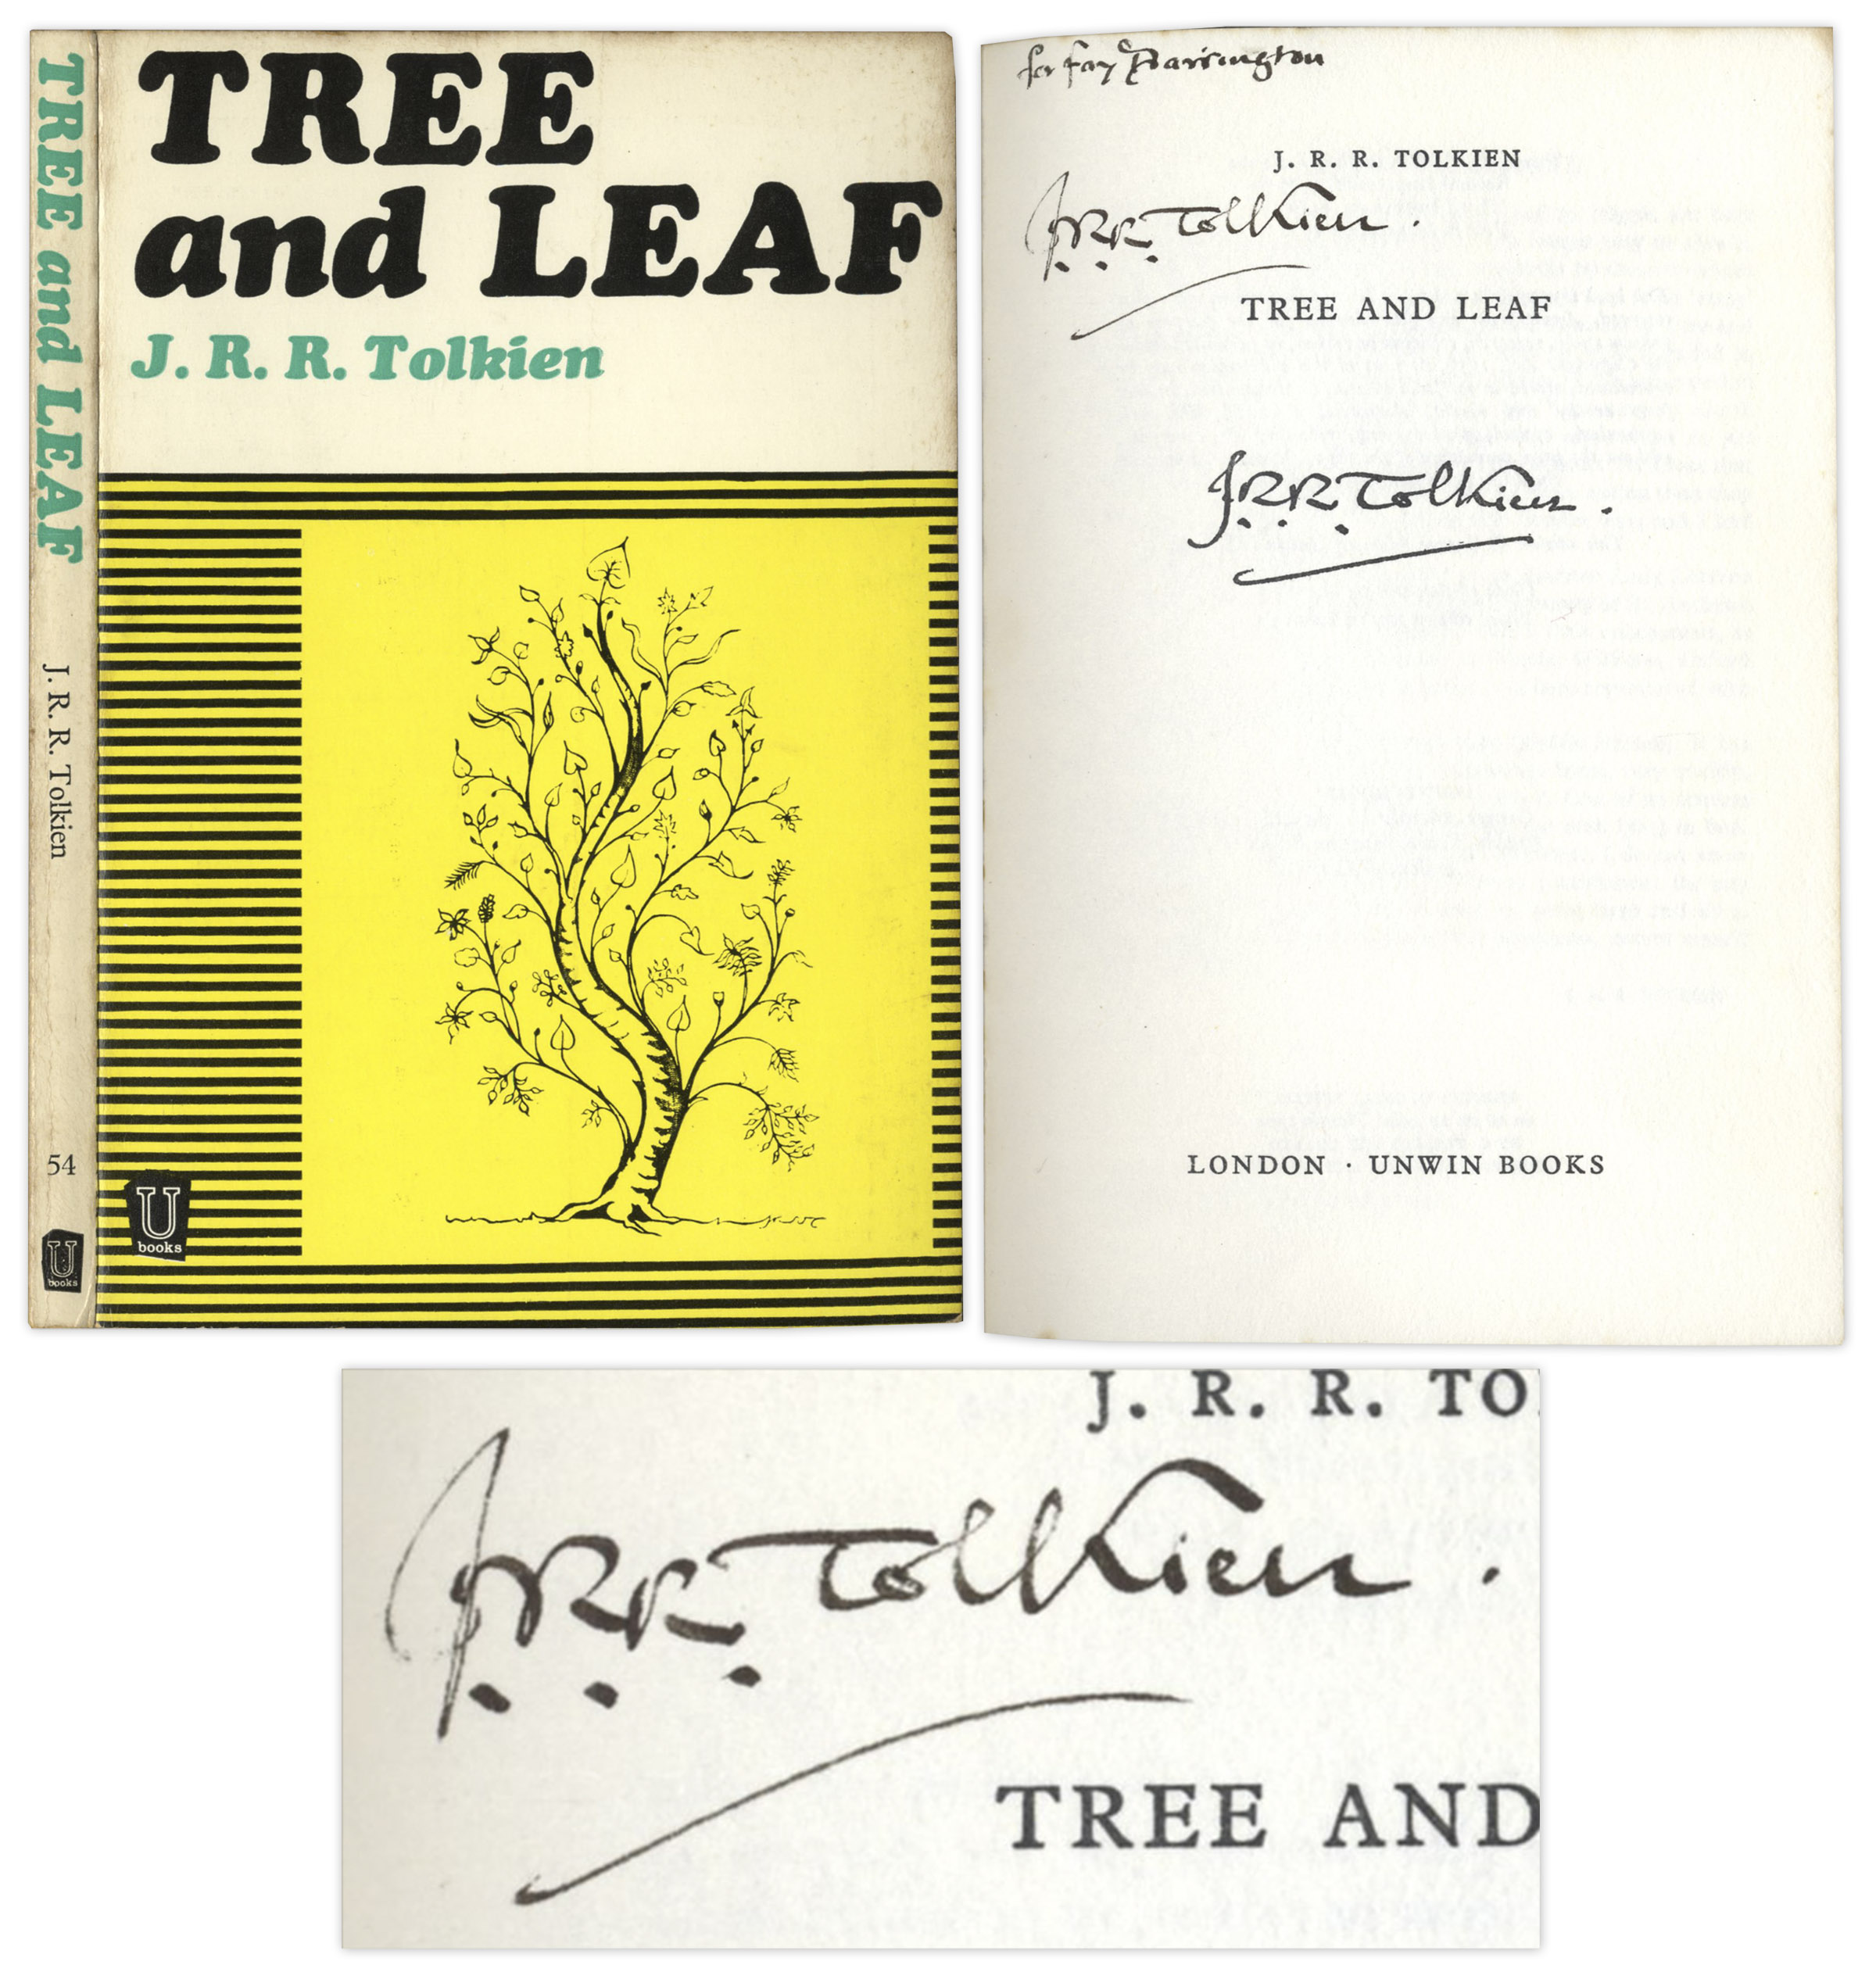 J.R.R. Tolkien First Edition J.R.R. Tolkien Signed Copy of ''Tree and Leaf'' -- With PSA/DNA COA